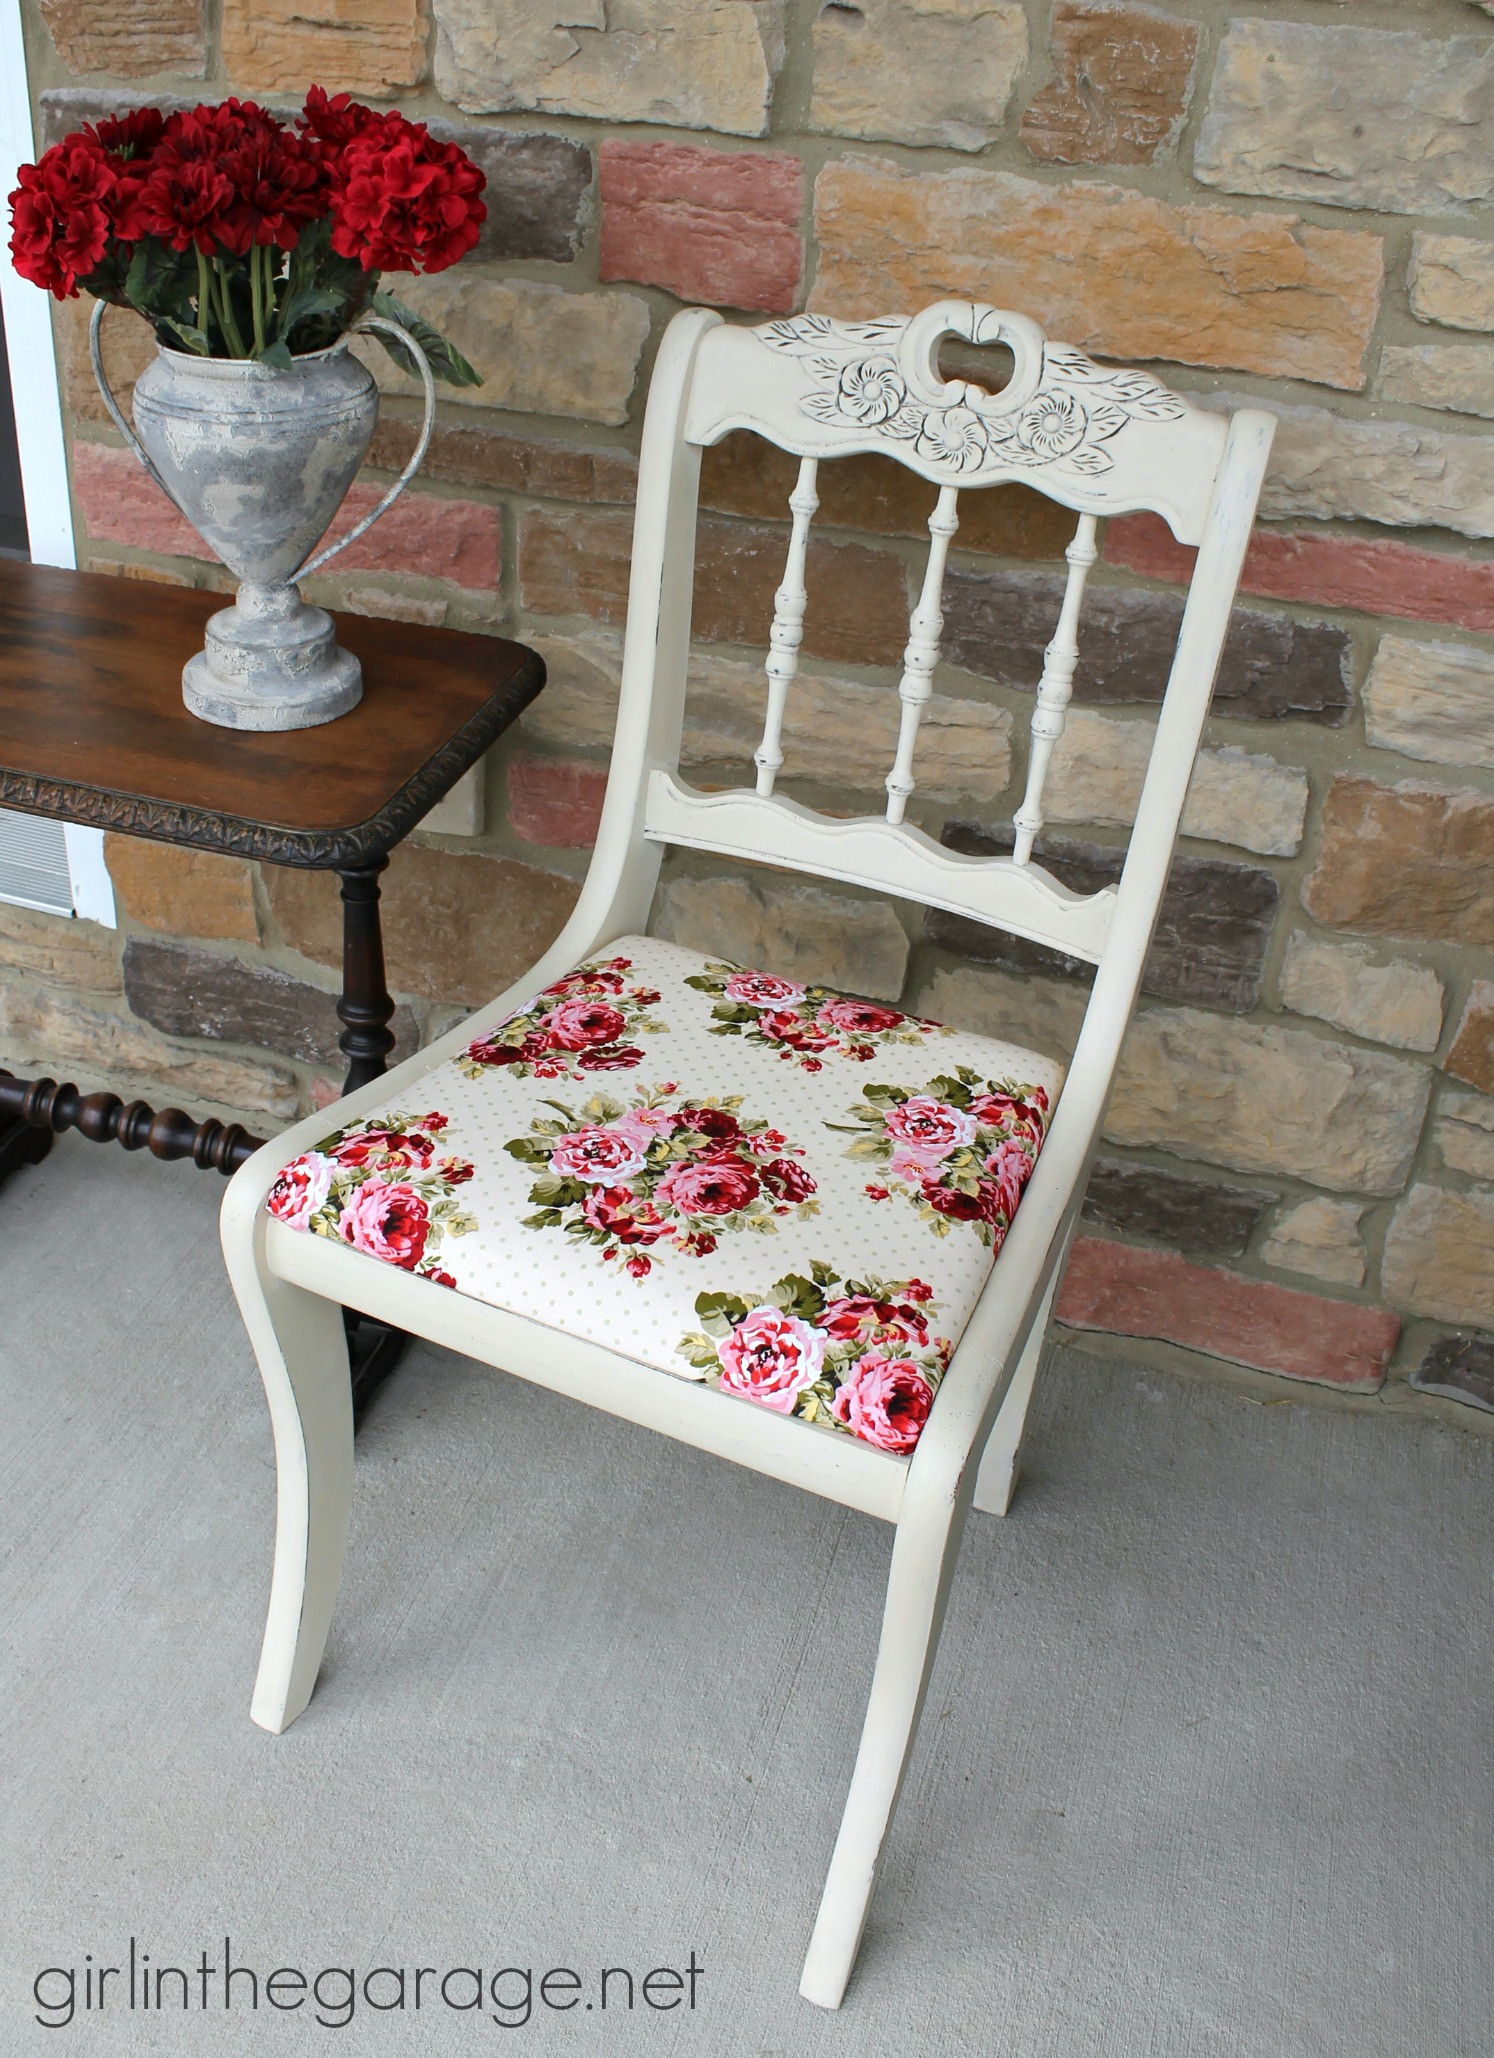 Best ideas about Shabby Chic Chairs . Save or Pin Shabby Chic Chair Makeover Now.